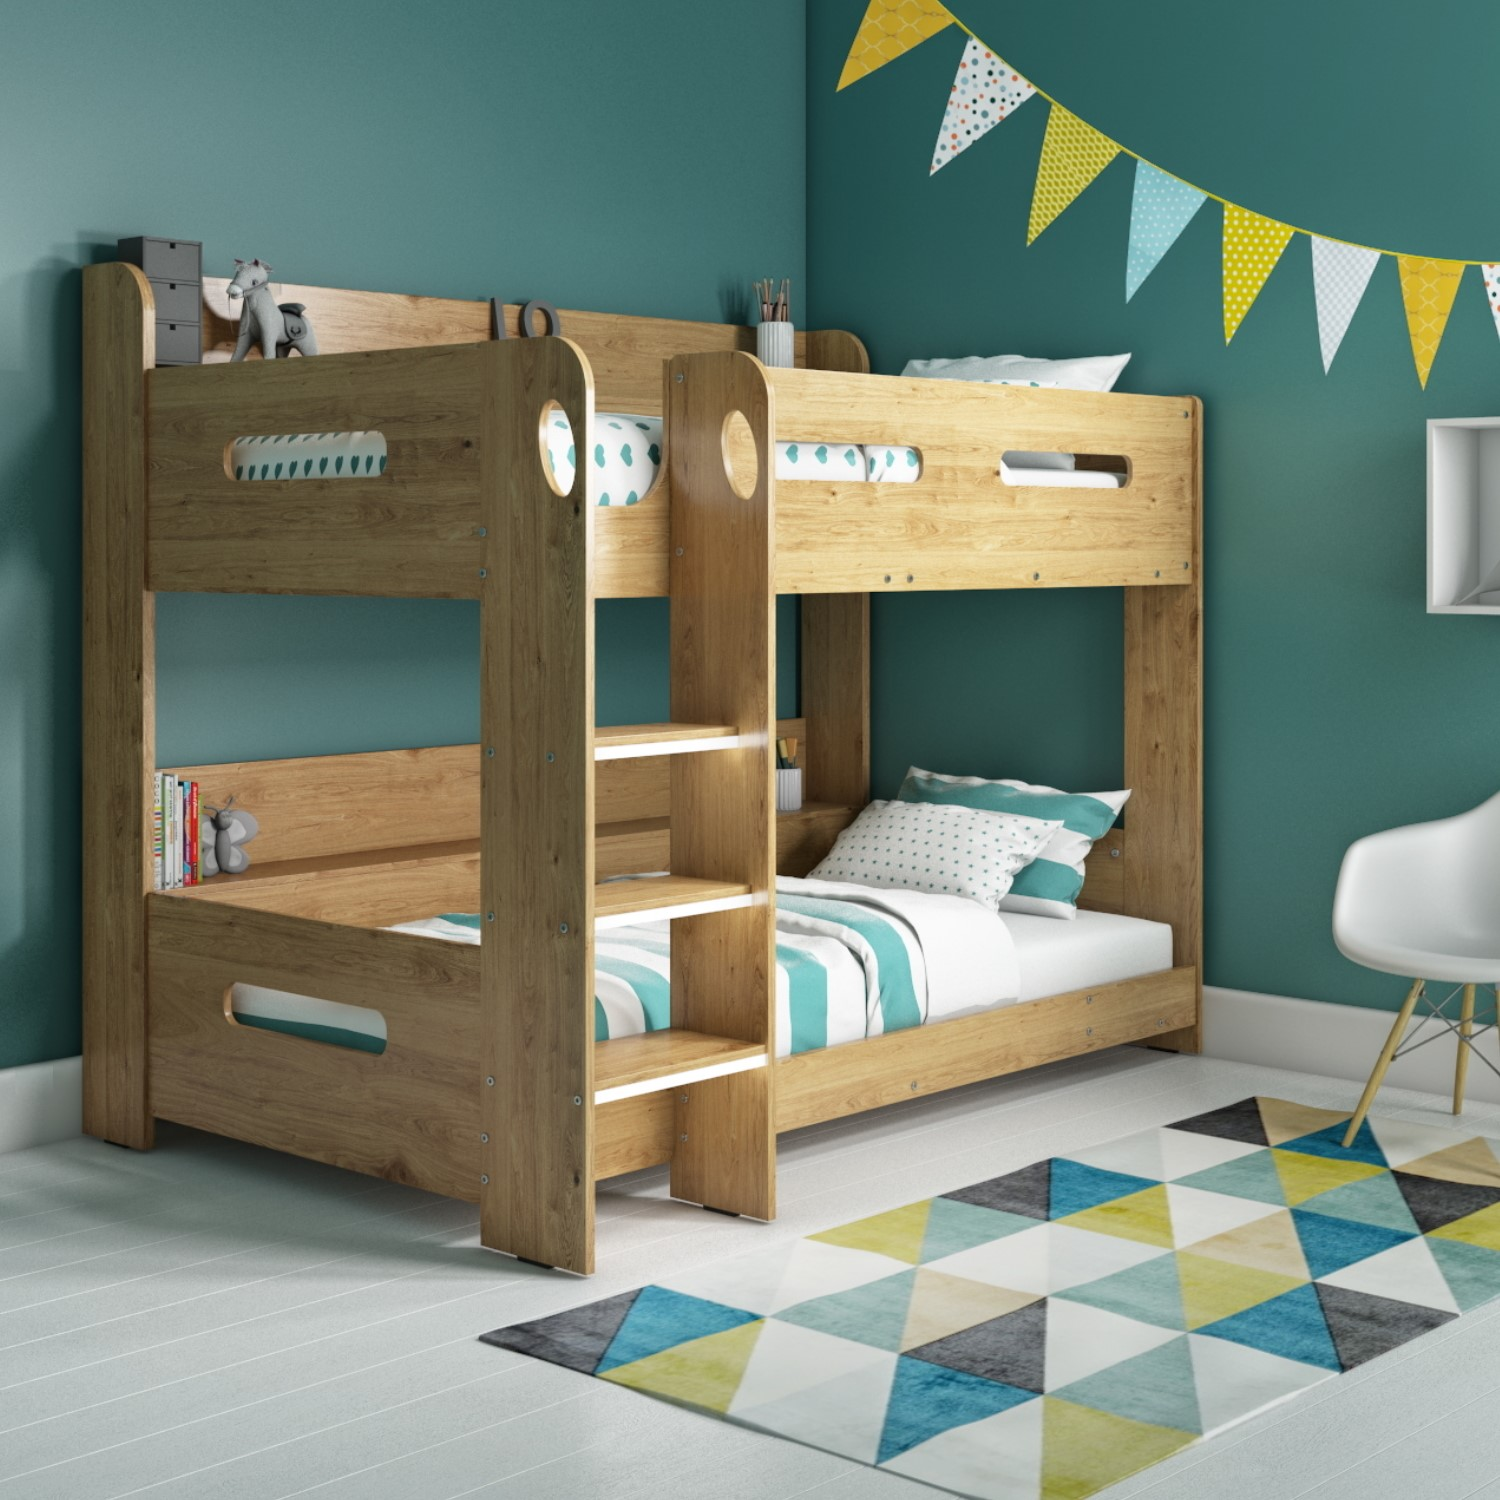 Furniture123 & Sky Bunk Bed in Oak - Ladder Can Be Fitted Either Side!